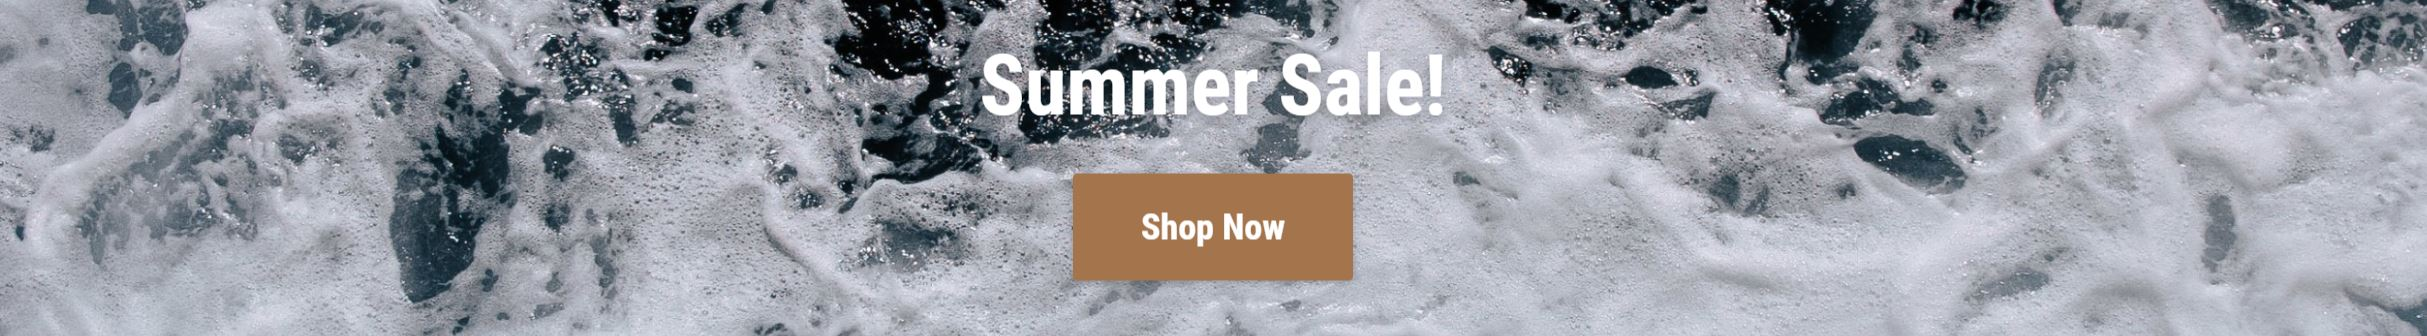 Men's Summer Sales 2019 | The Best Shoe, Suit & Accessory